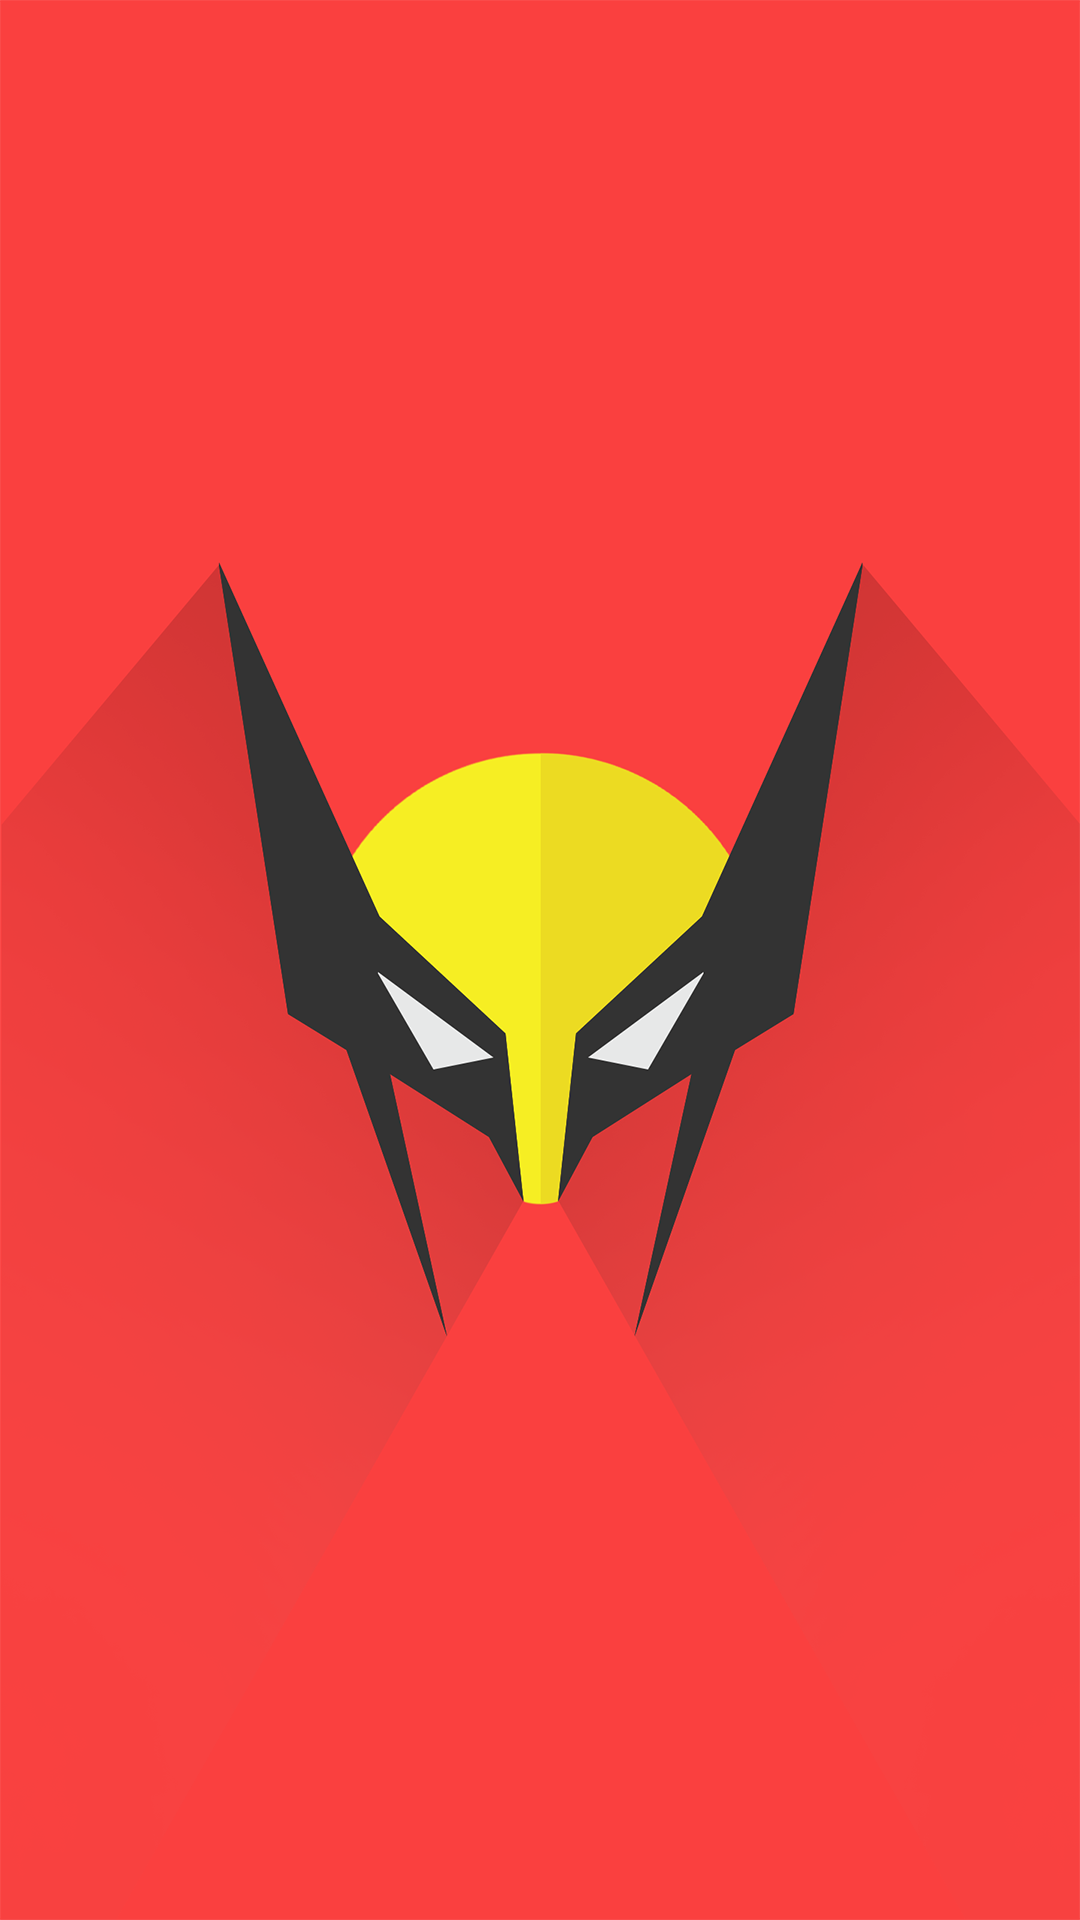 wolverine logo wallpapers iphone 6s plus by lirking20 on